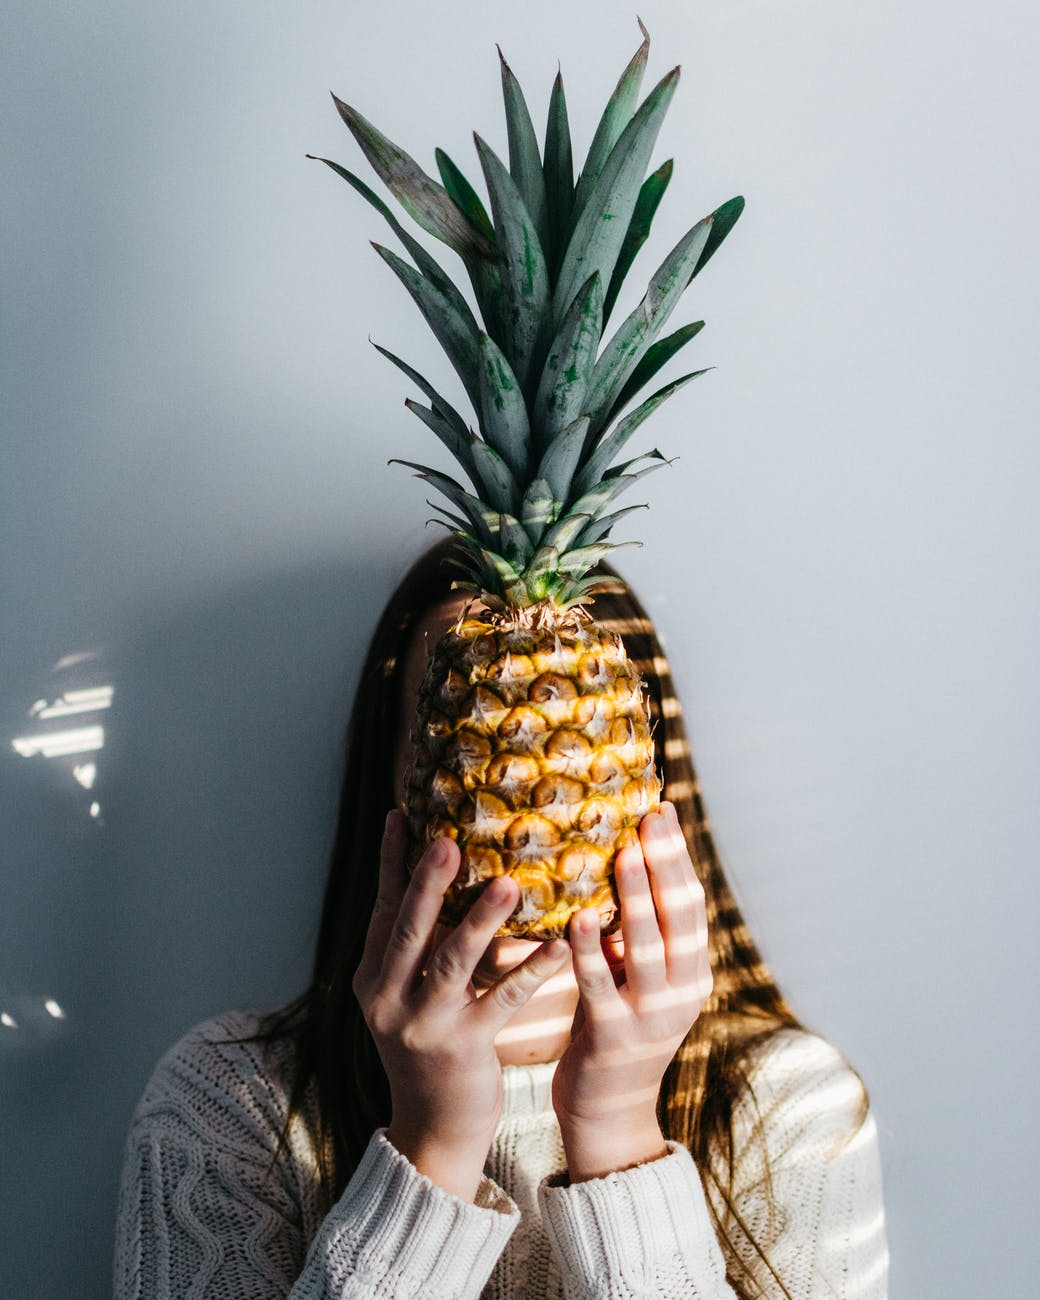 photo of person holding pineapple fruit in front of face